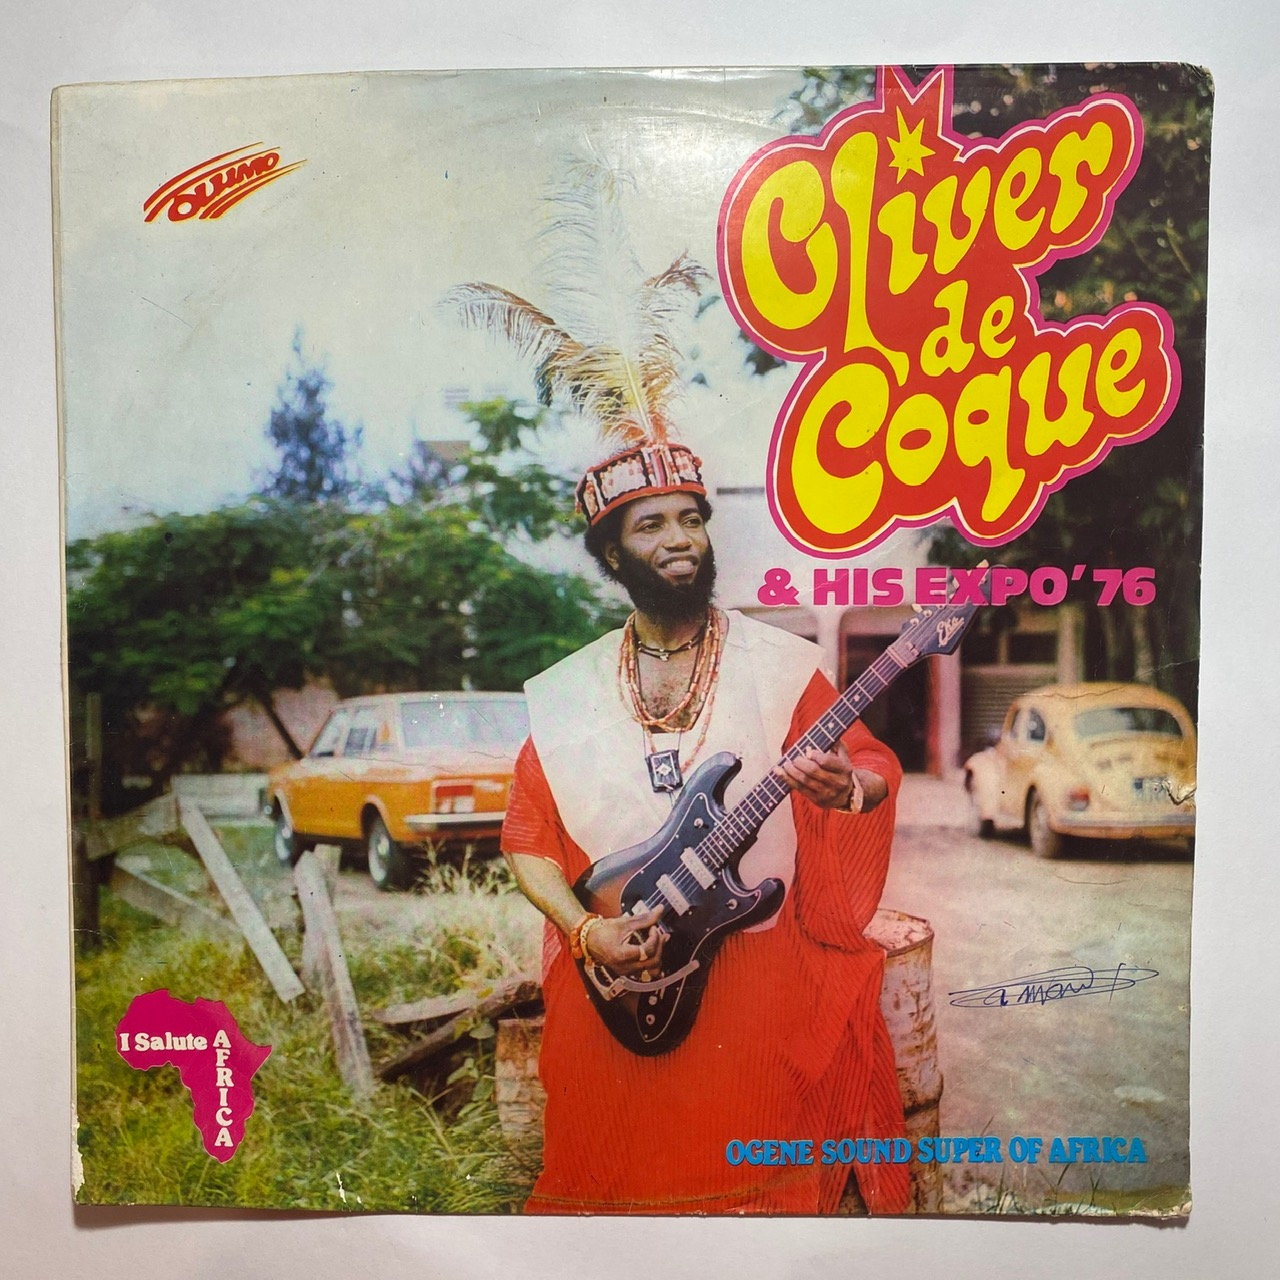 Oliver de Coque and his Expo 76 I salute Africa